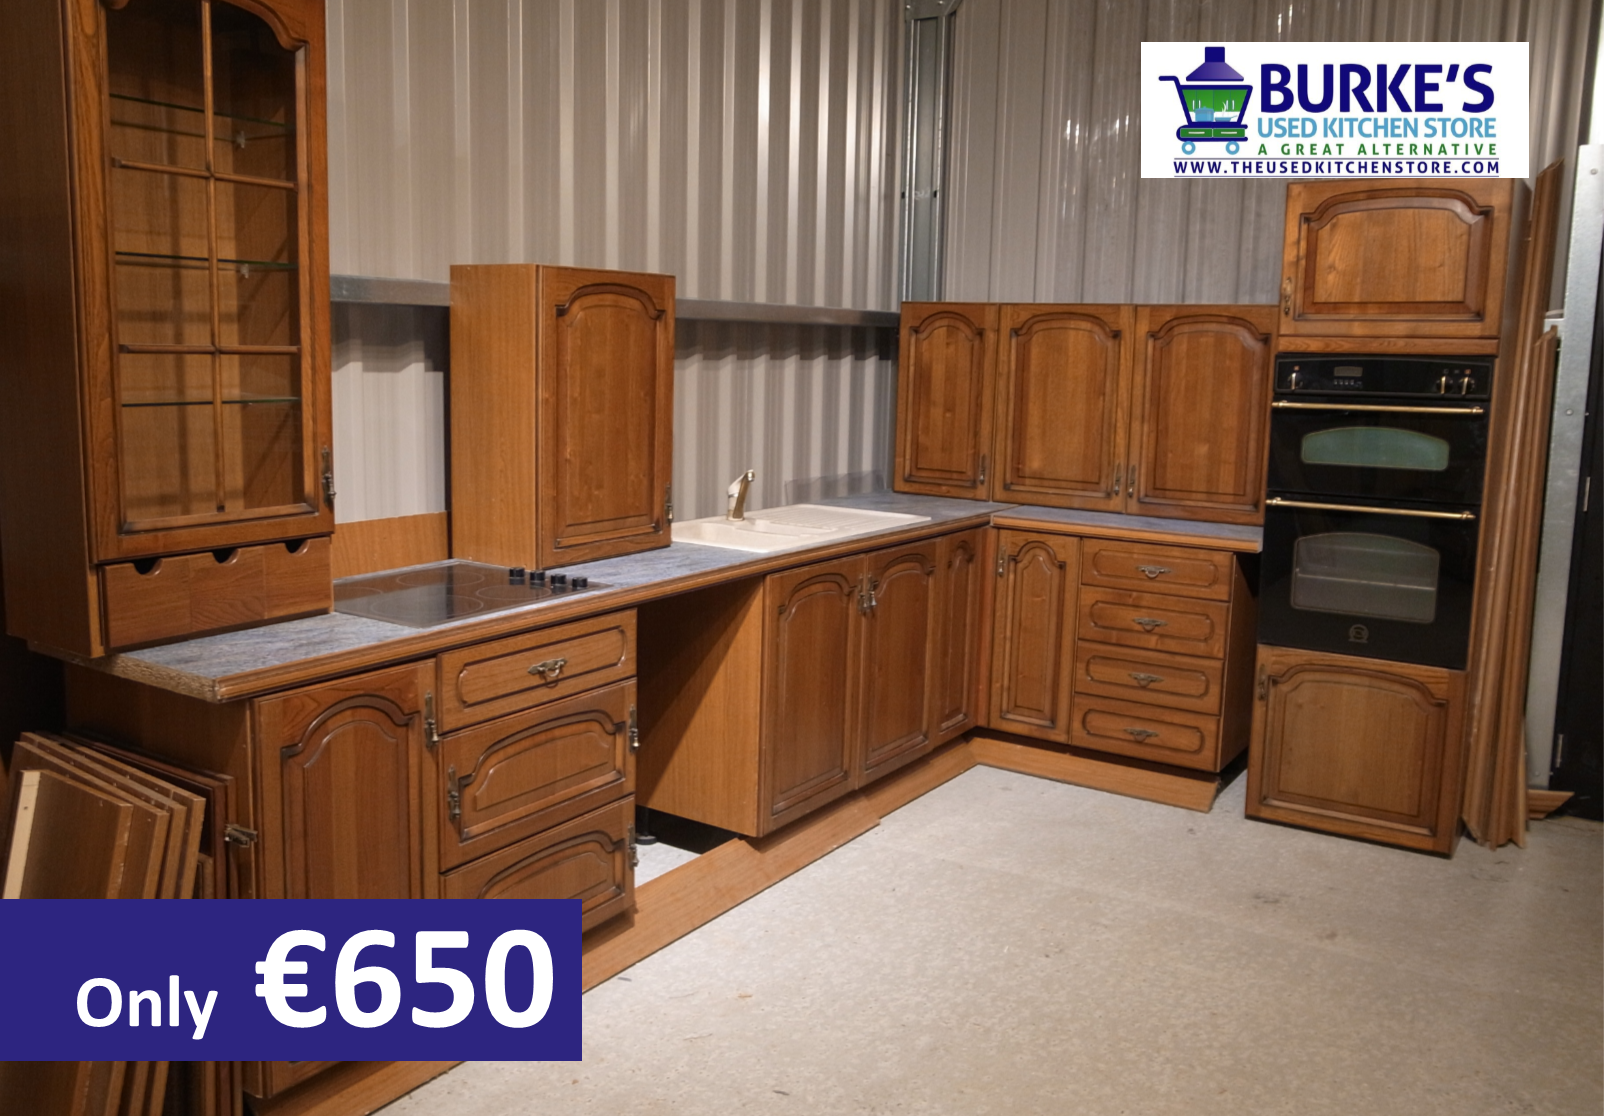 Kitchen Outlet Hob ~ The used kitchen store beautiful solid wood with